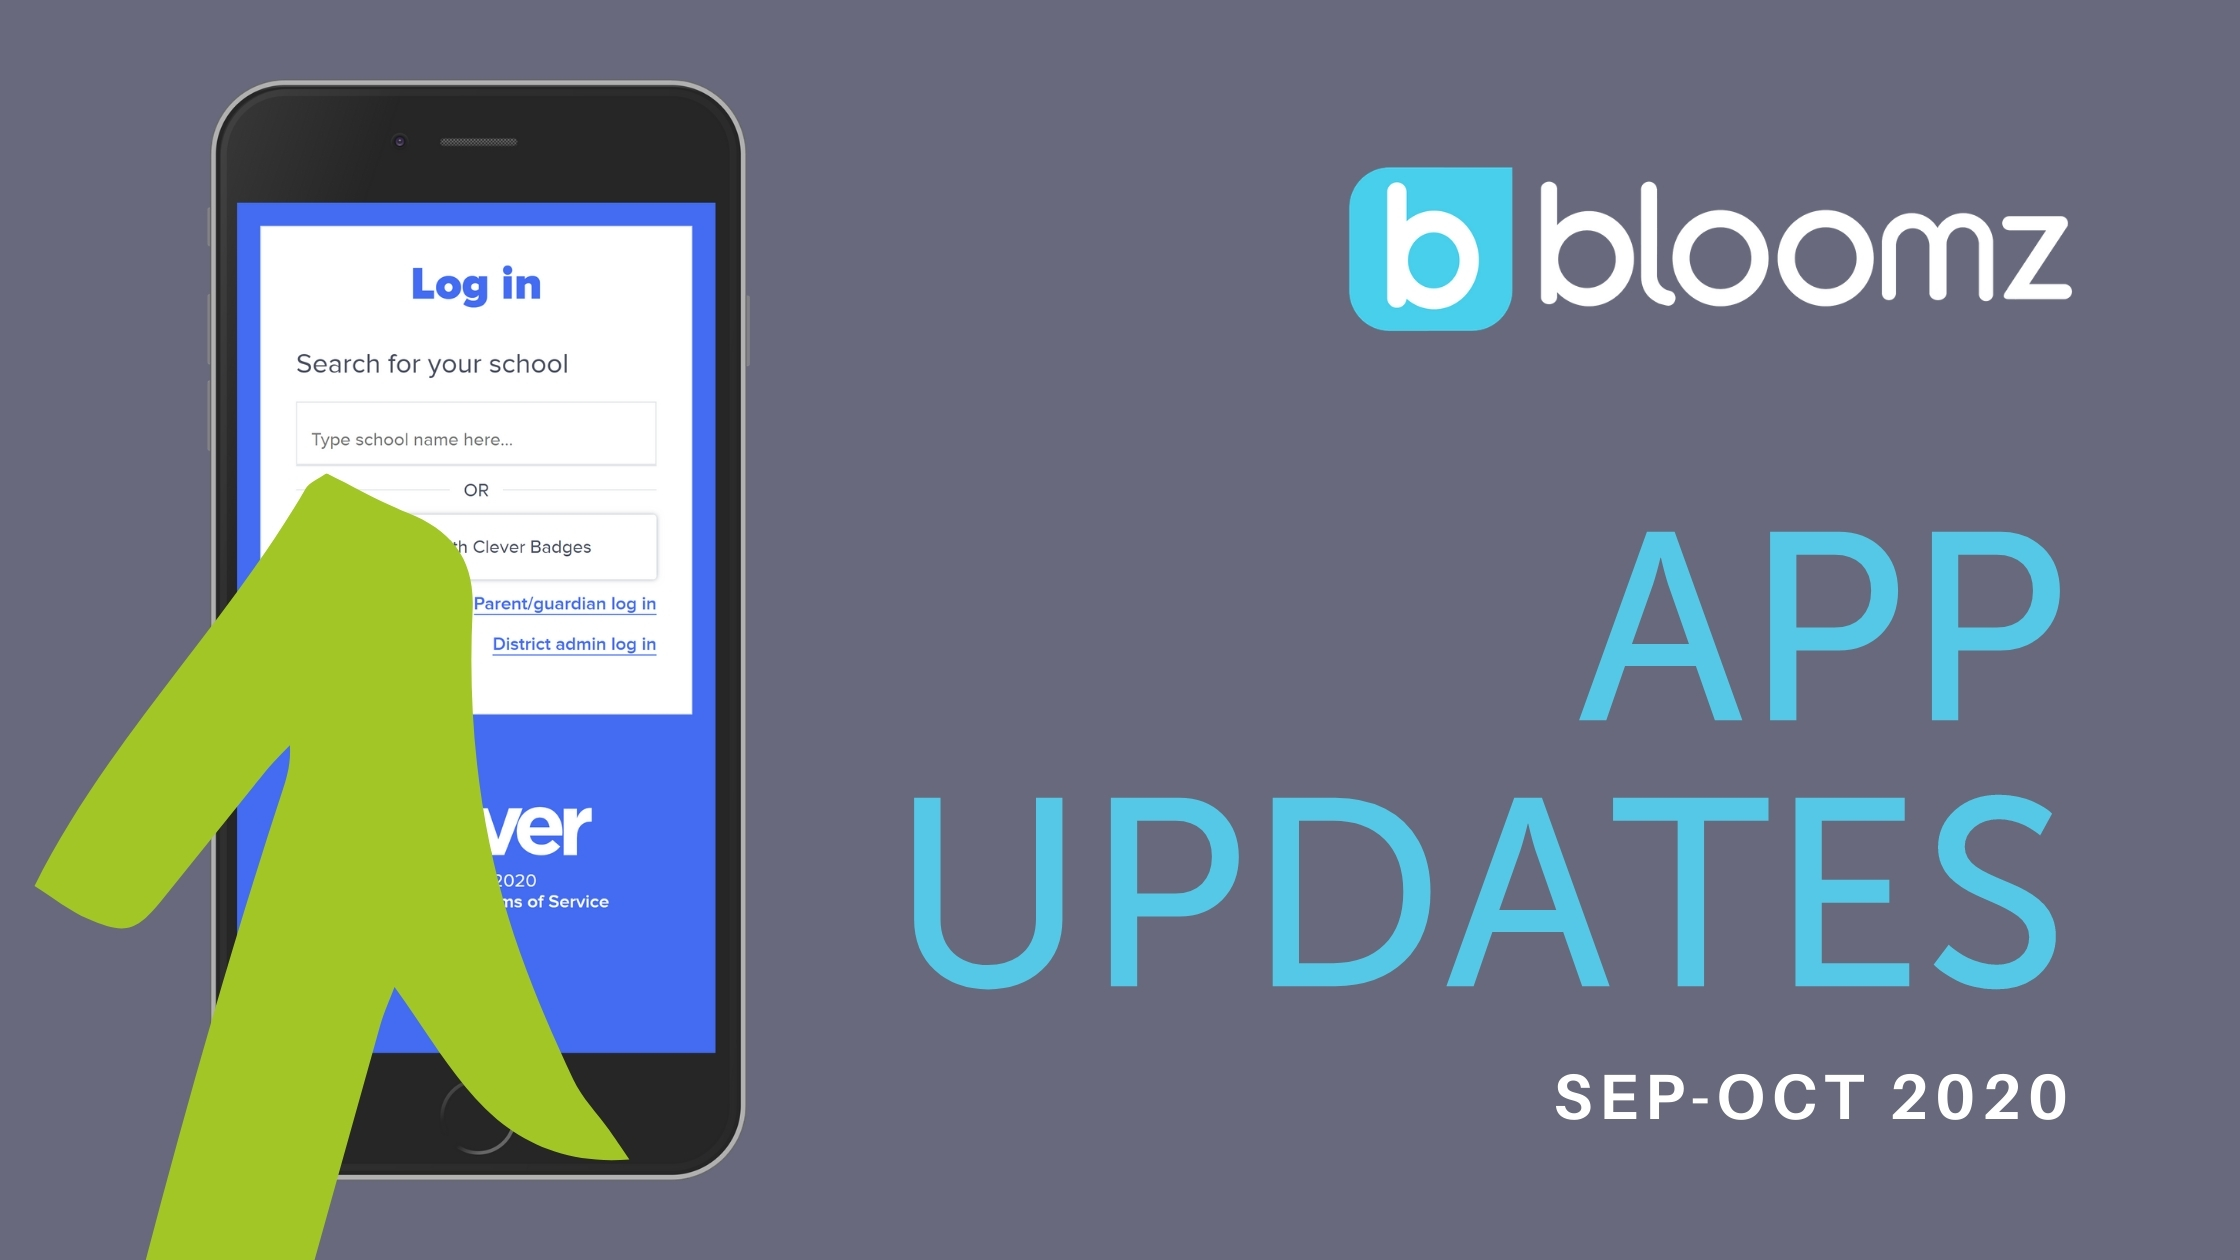 Bloomz Updates from September-October 2020